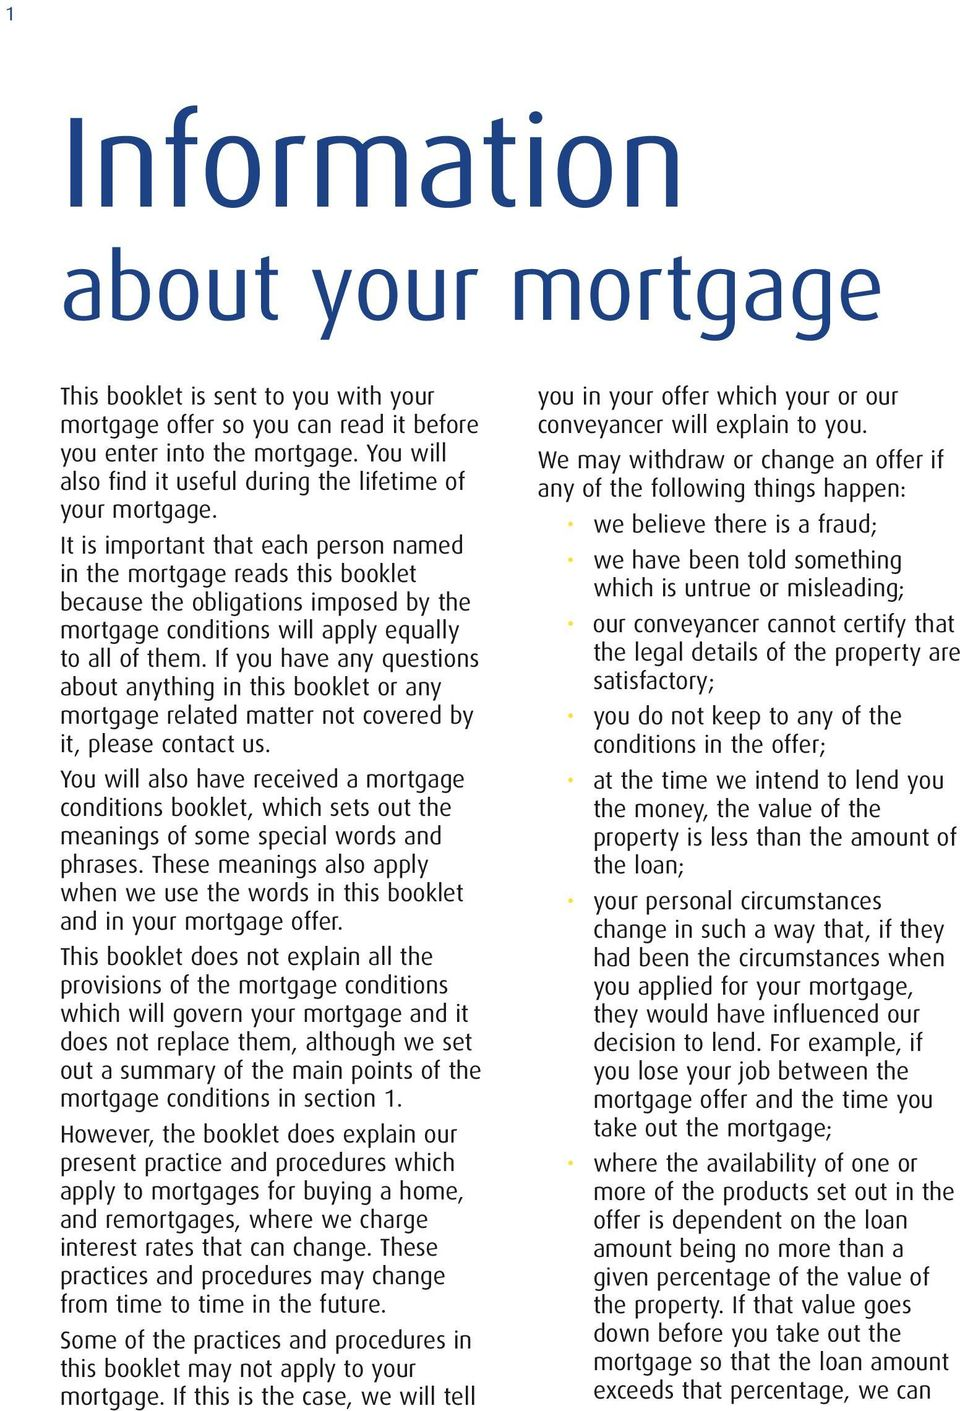 It is important that each person named in the mortgage reads this booklet because the obligations imposed by the mortgage conditions will apply equally to all of them.